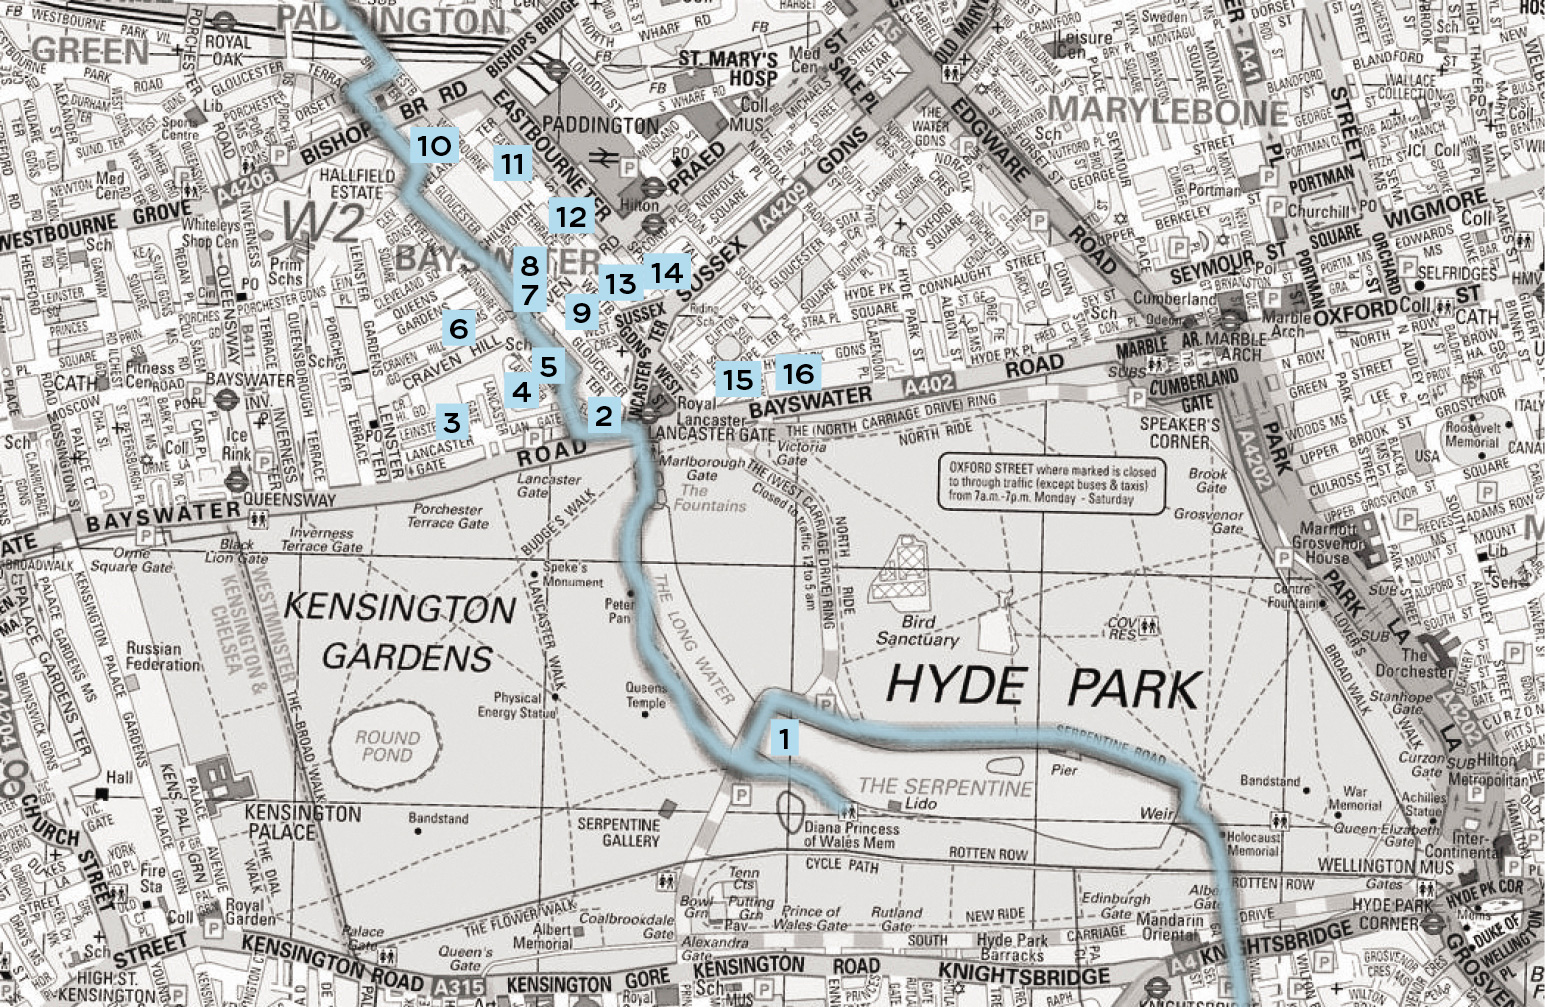 Tributaries to the Thames in the London Basin